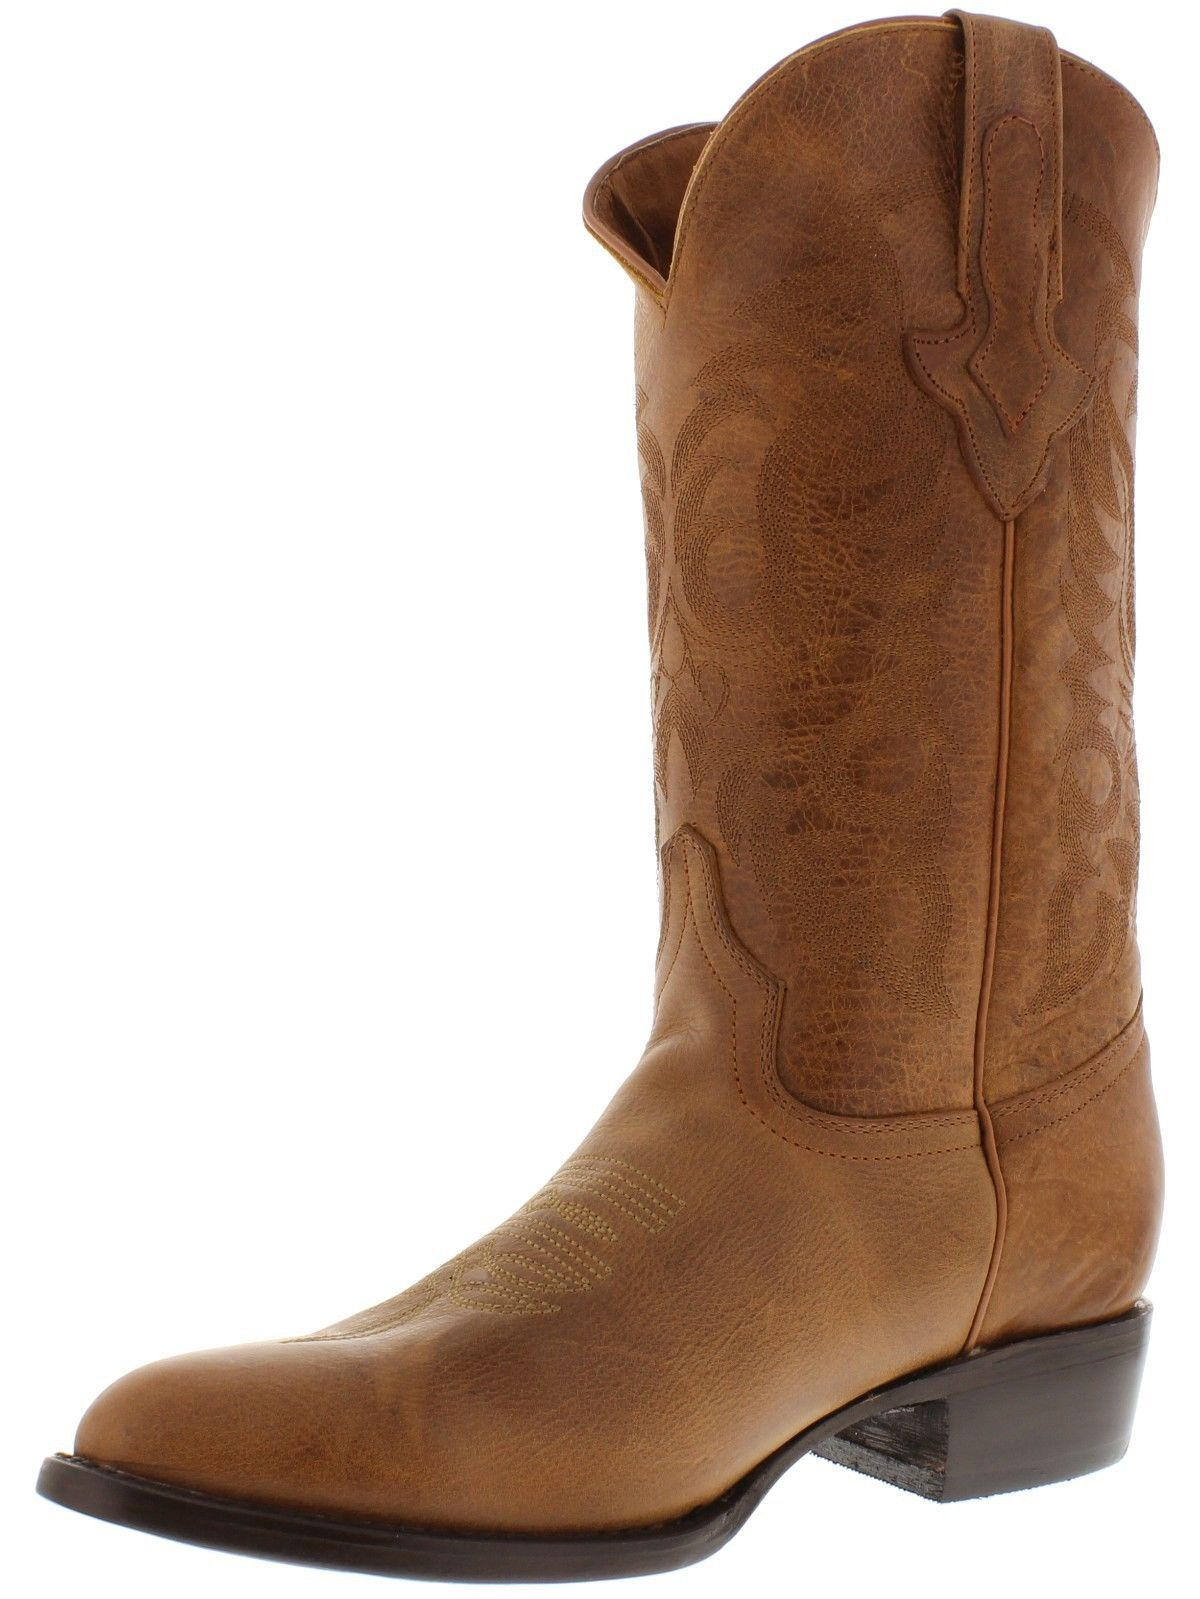 20182017 Boots Justin Boots Mens Ropers Equestrian Boot On Sale Online